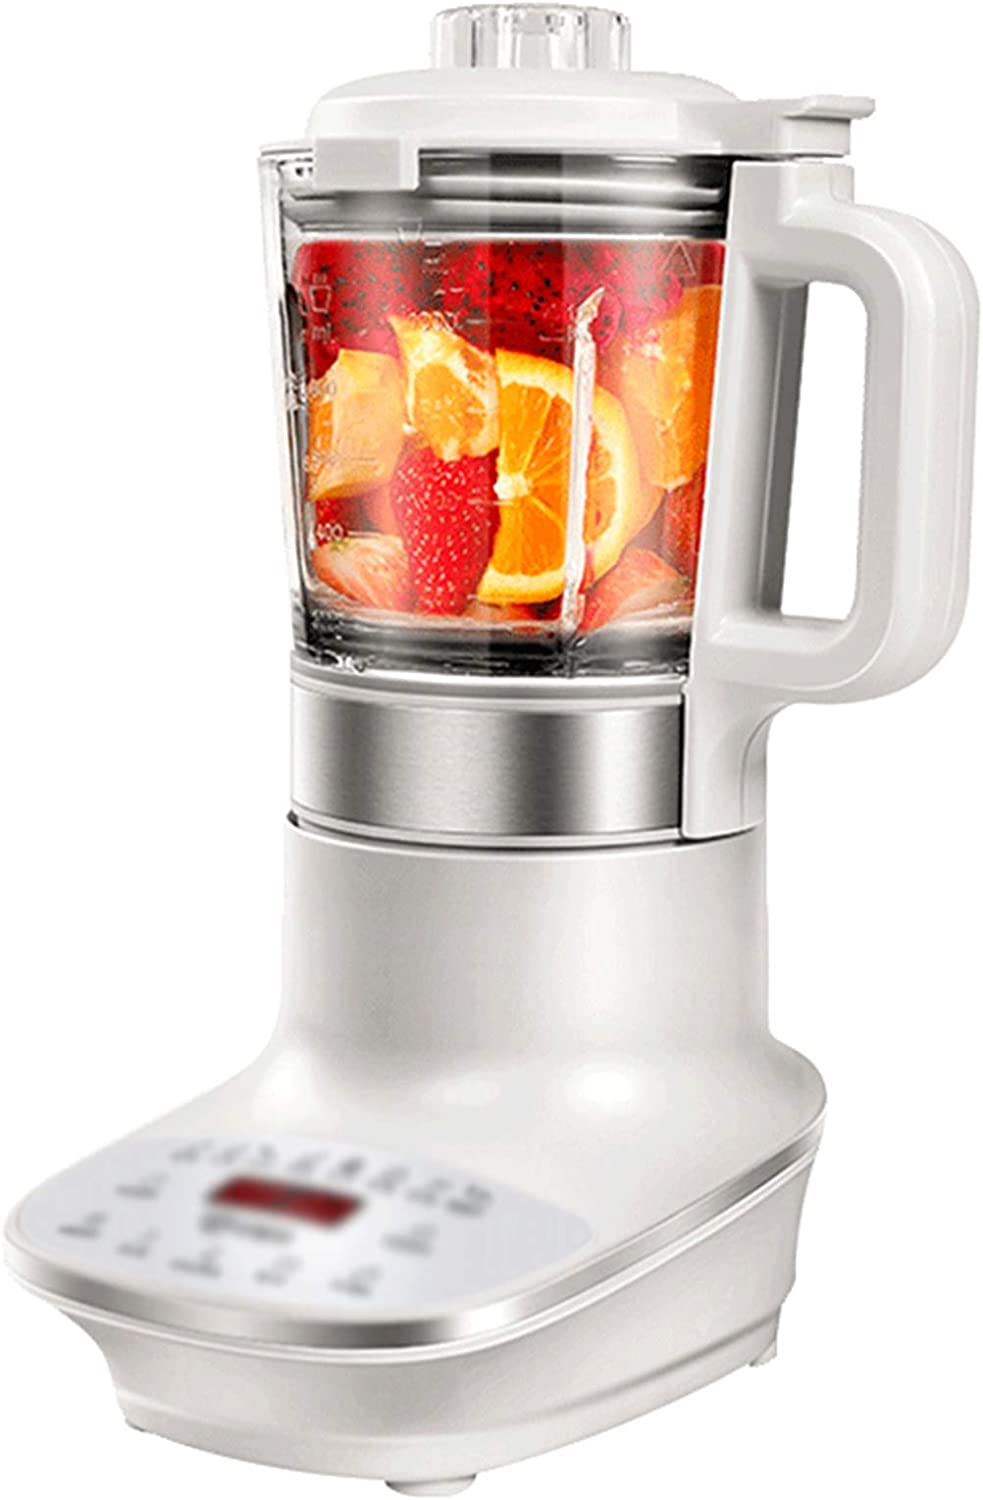 Vacuum Blender, Professional Countertop Blender Ice Crusher, 32000RMP High Speed Kitchen Smoothie Maker with LED Screen & Timer